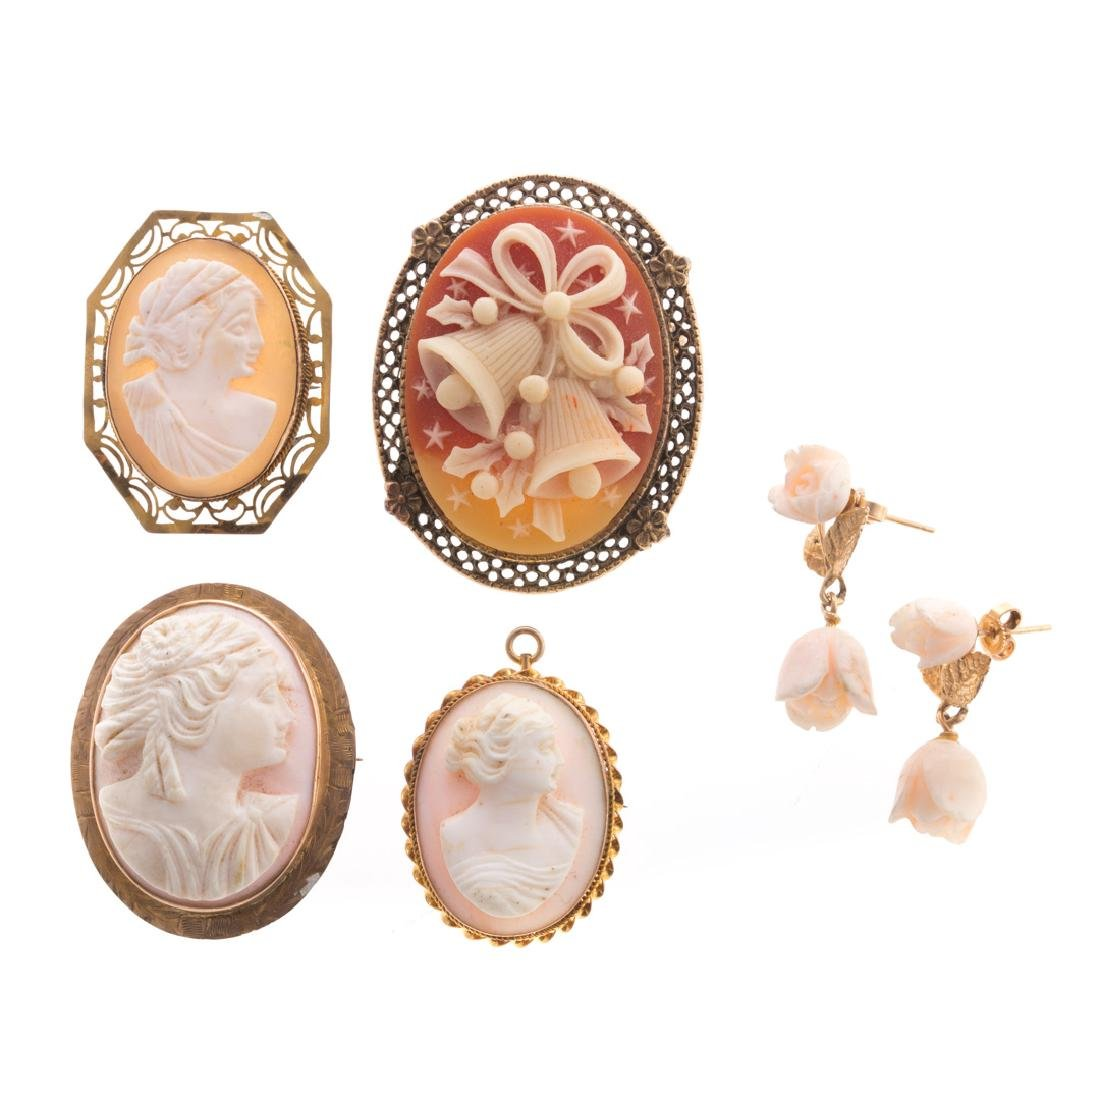 A Collection of Lady's Cameo Brooches